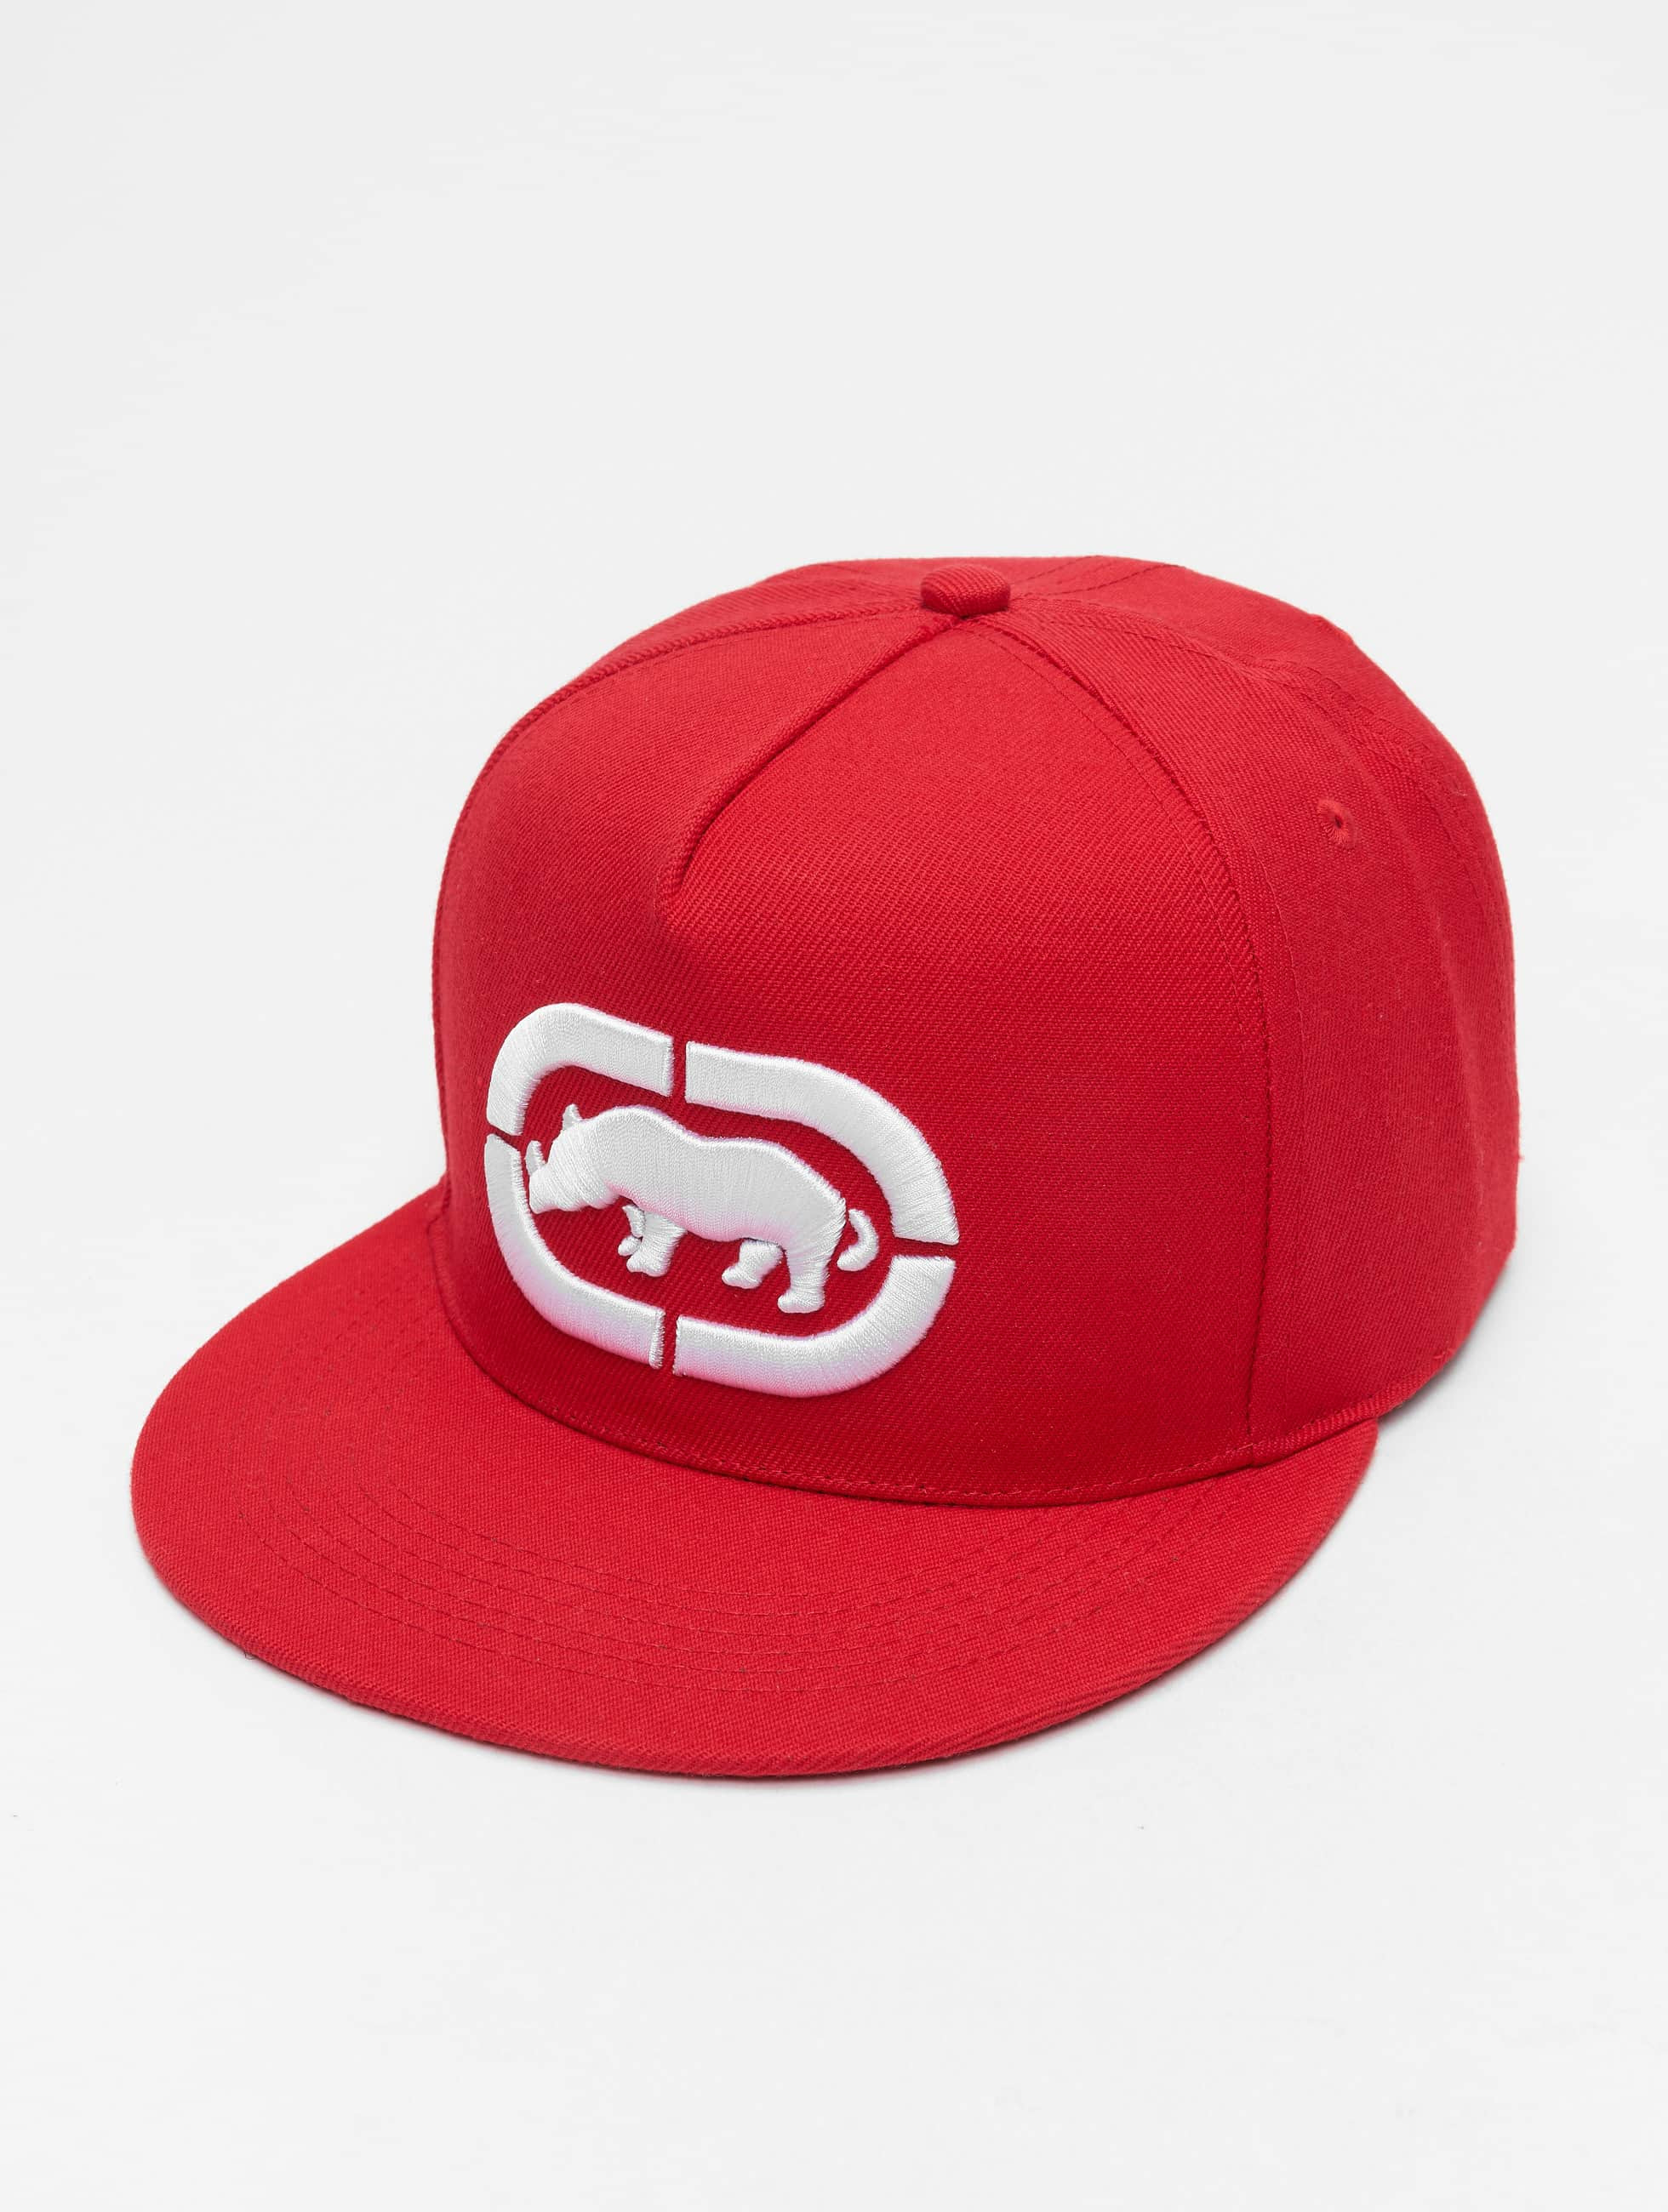 Ecko Unltd. / Snapback Cap Base in red Adjustable